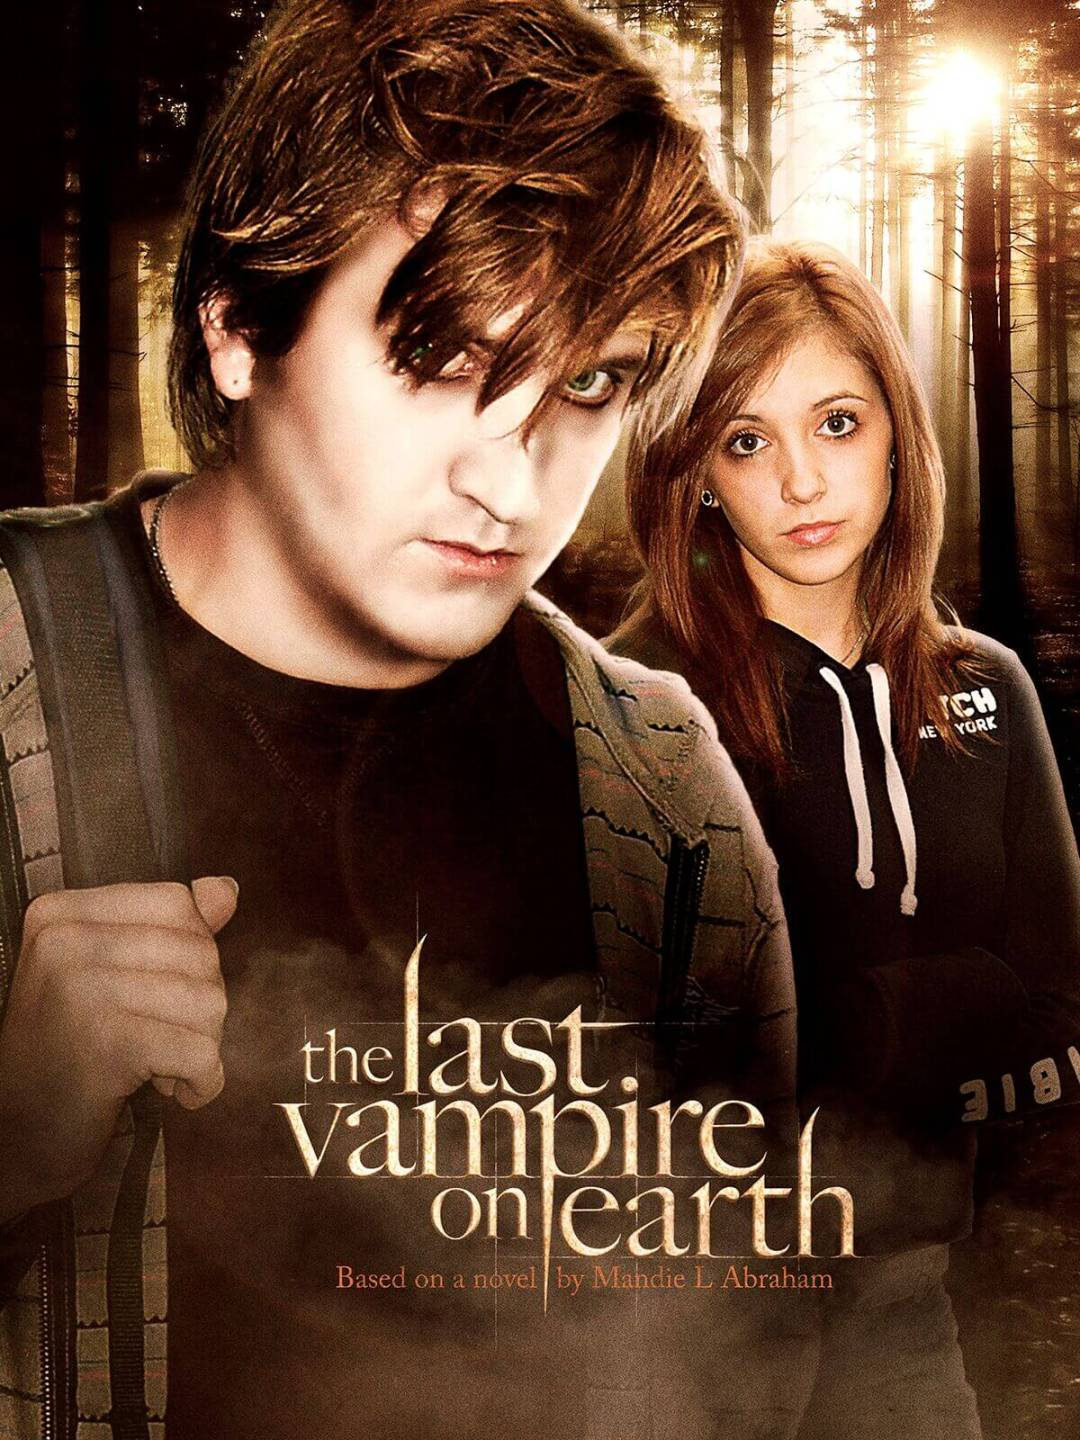 The Last Vampire on Earth 1200x1600 THE LAST VAMPIRE ON EARTH